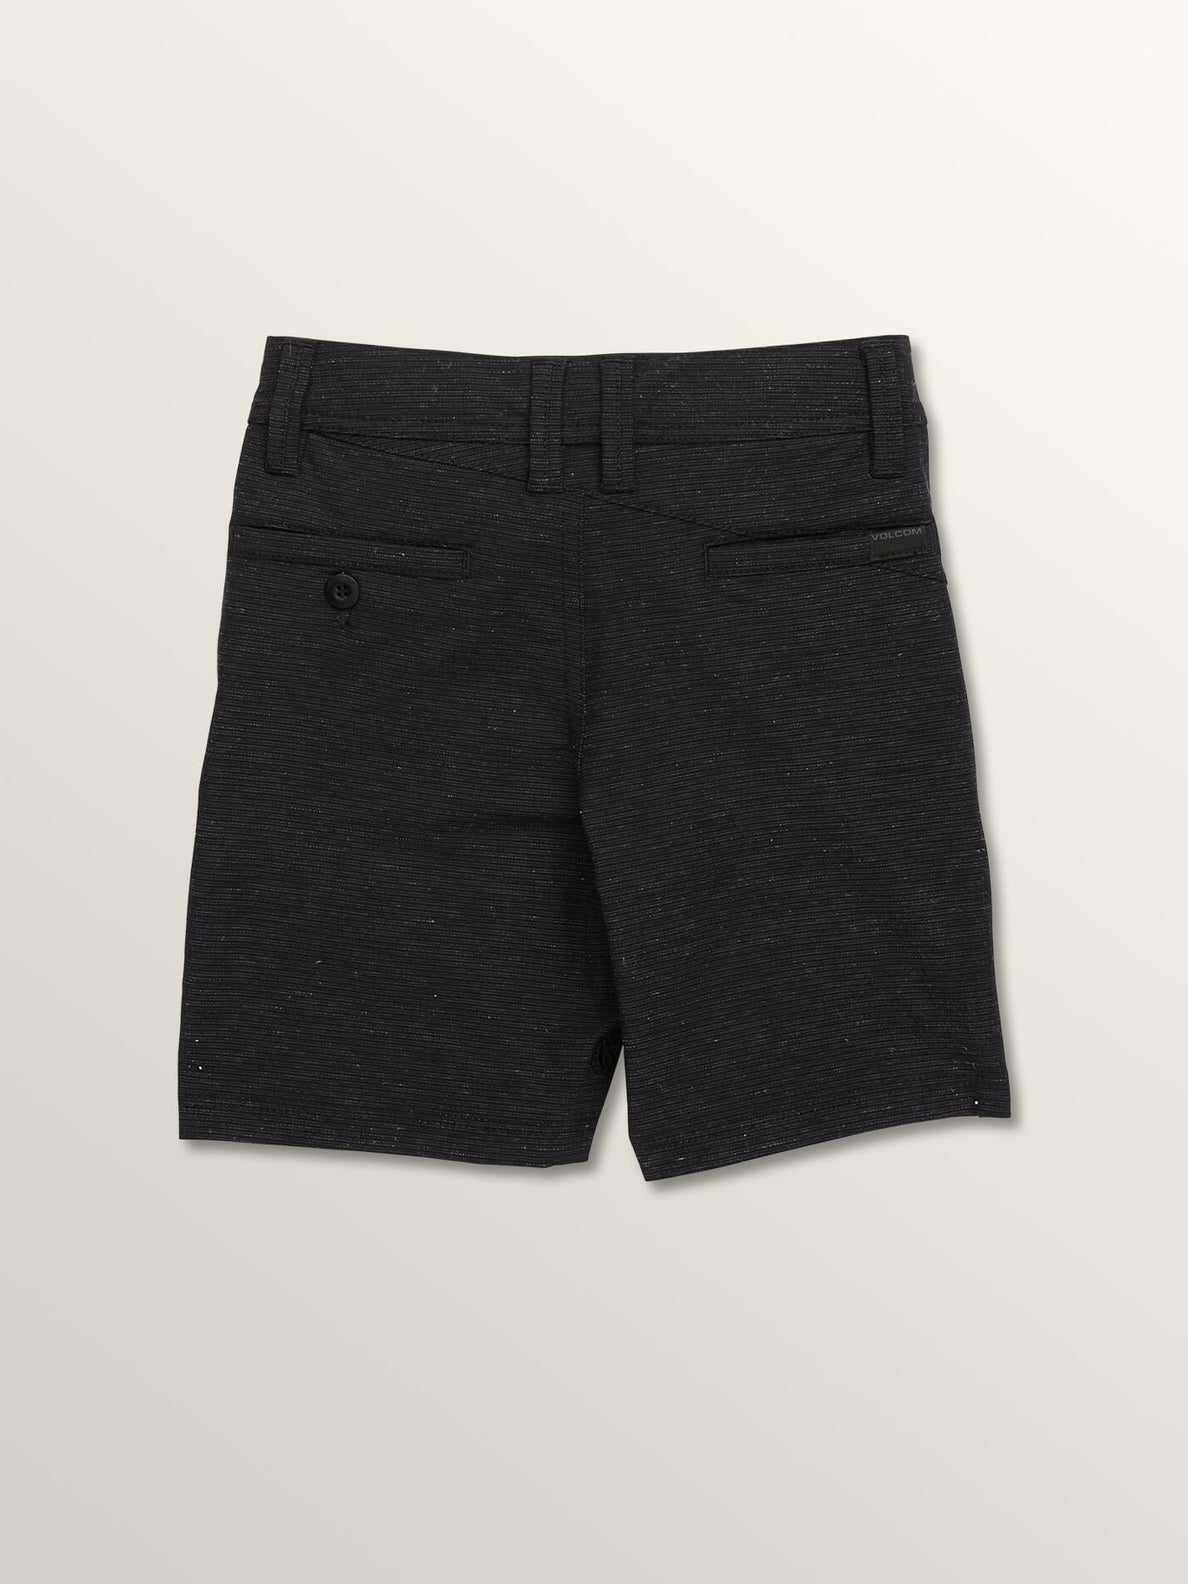 Little Boys Frickin Surf 'N Turf Slub Hybrid Shorts In Black, Back View